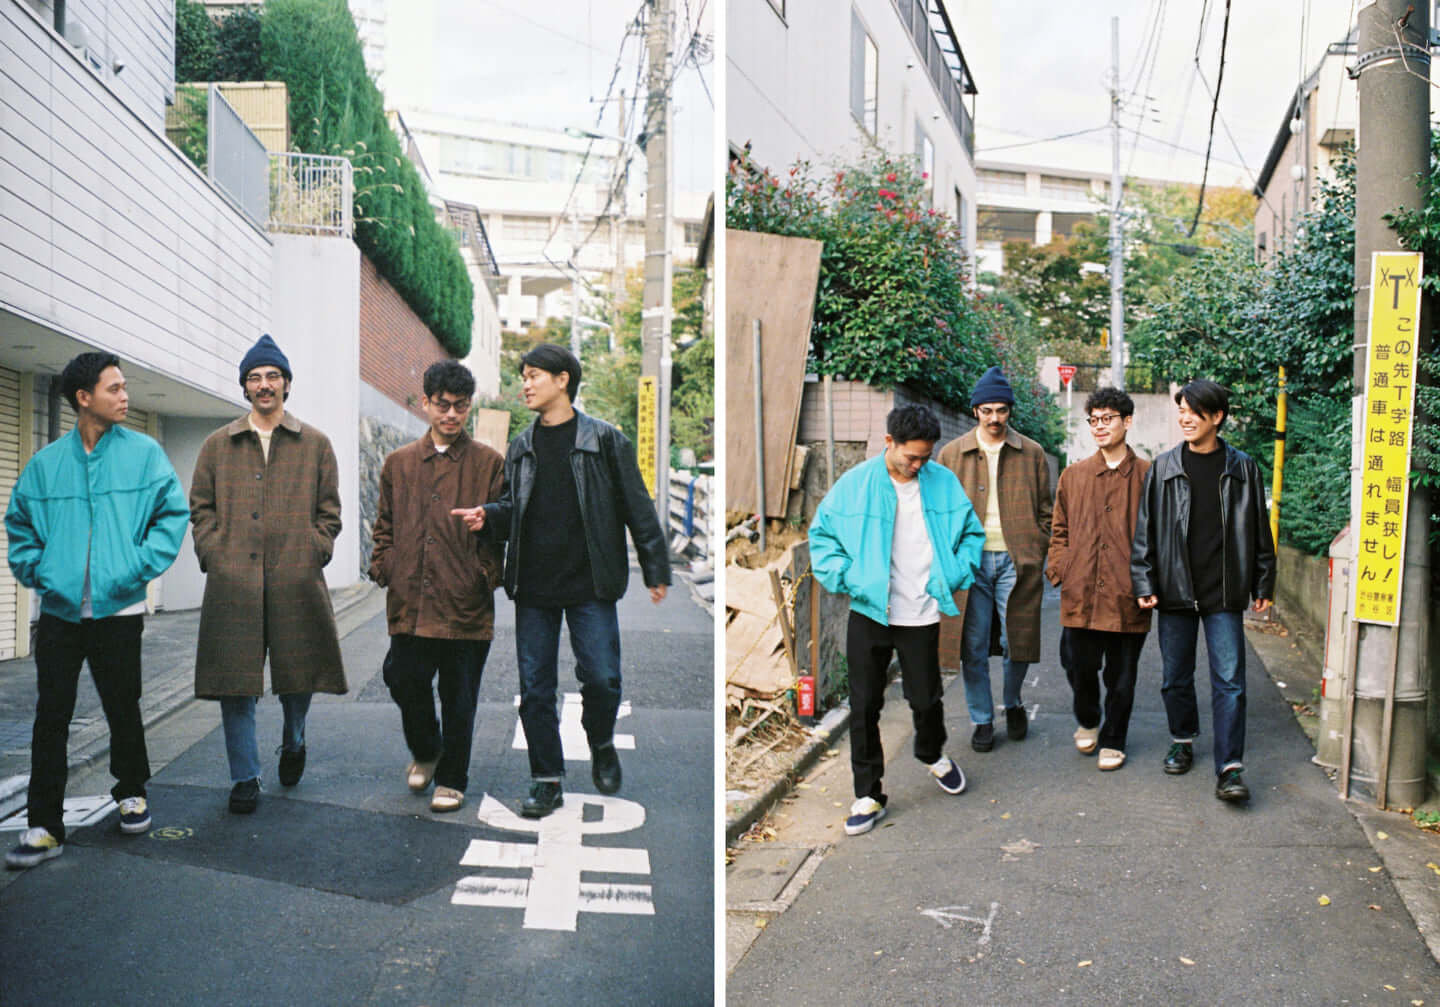 Yogee New Wavesが『to the MOON e.p.』に込めた想いと国境を超えた先にあるもの interview-yogee-6043-1440x1007